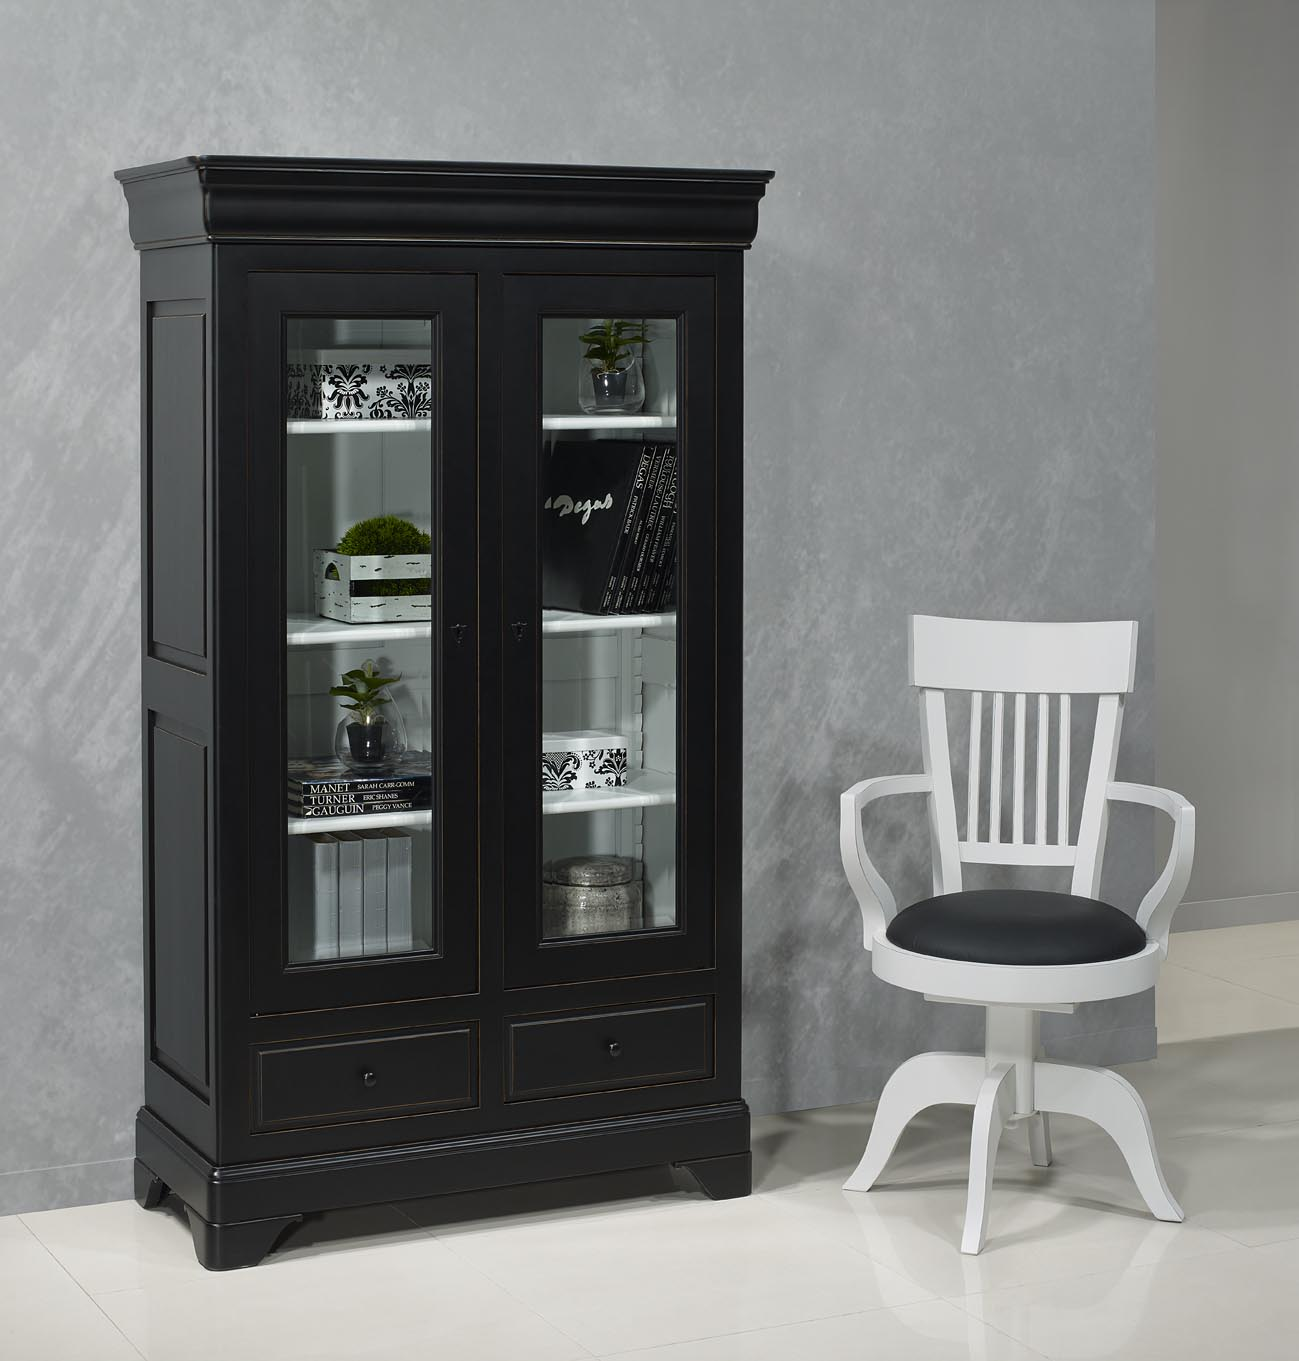 Biblioth que 2 portes en merisier massif de style louis for Meuble 2 porte noir